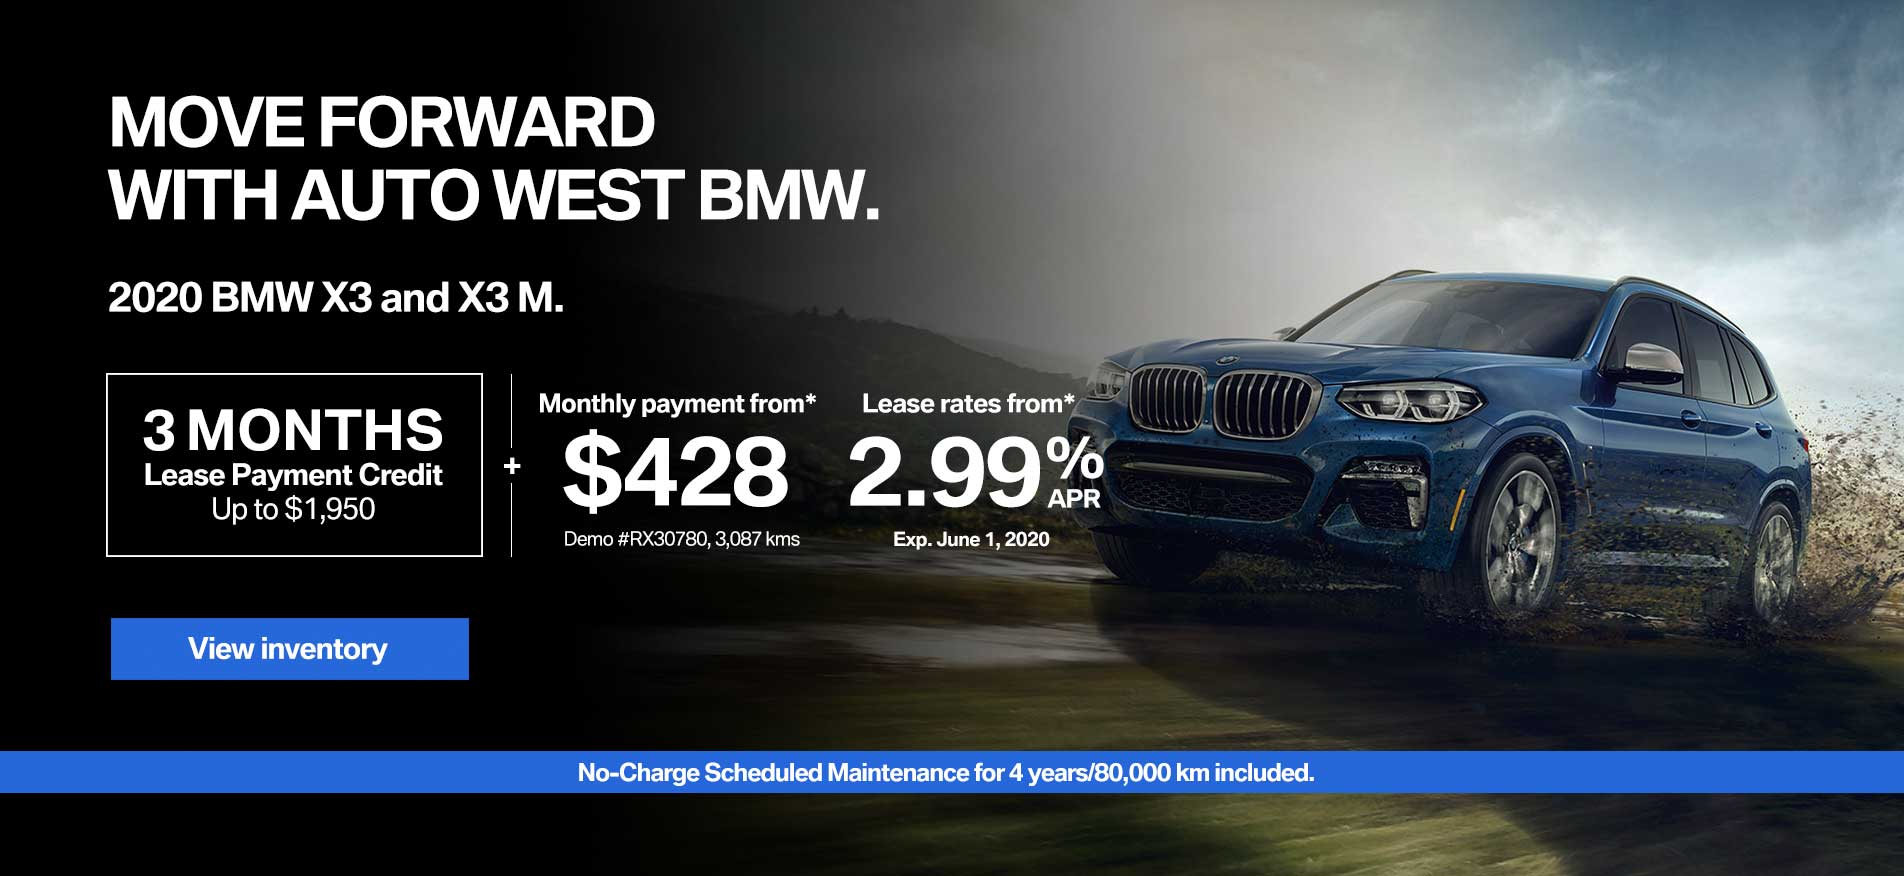 Auto West BMW Lease Payment Credit X3